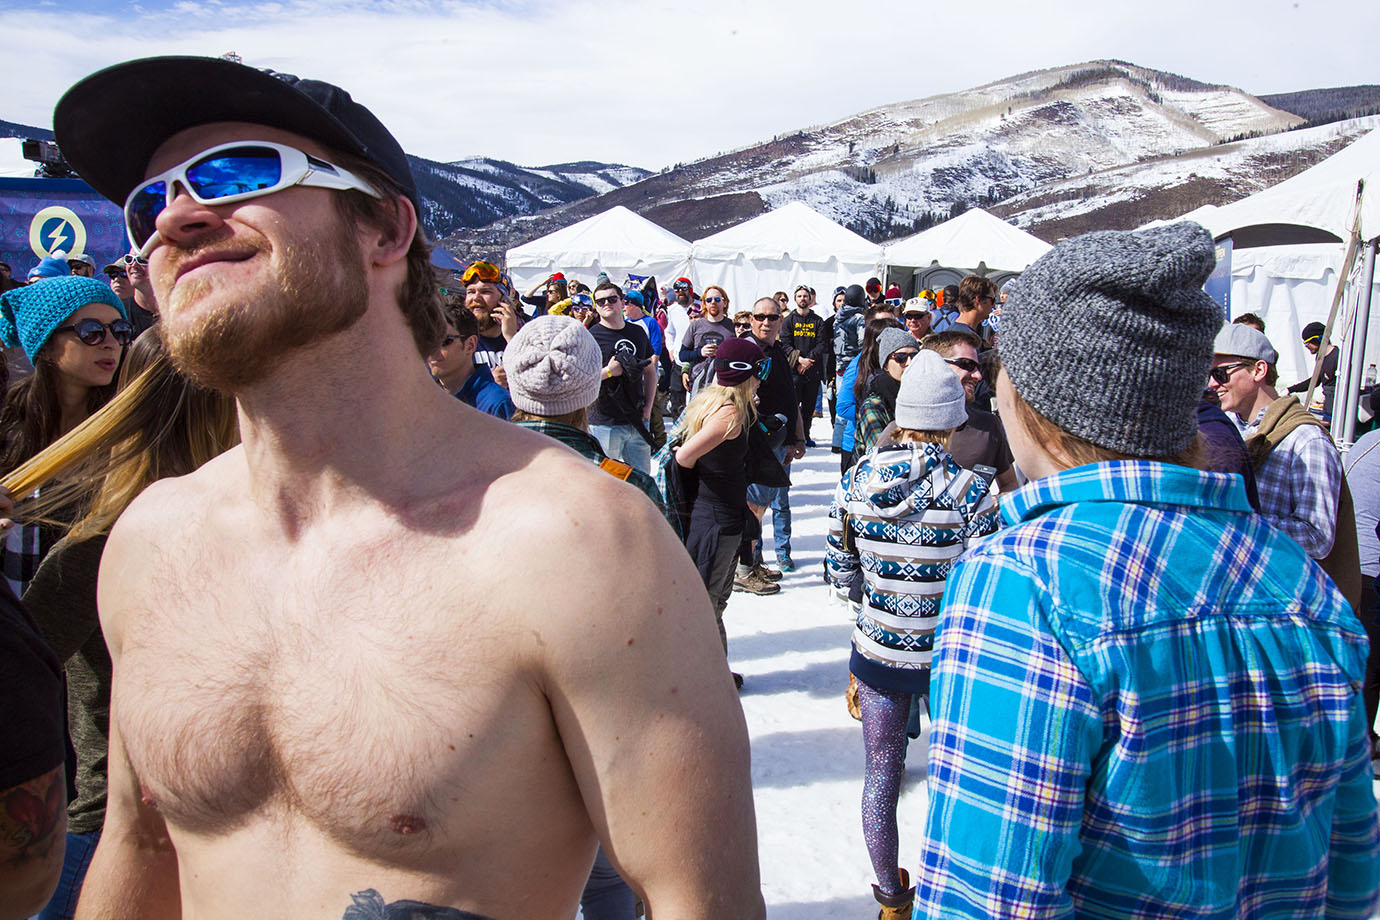 This fan was so enamored by the warm temperatures that he opted to go topless while waiting for the men's Superpipe final to begin. He was not alone.